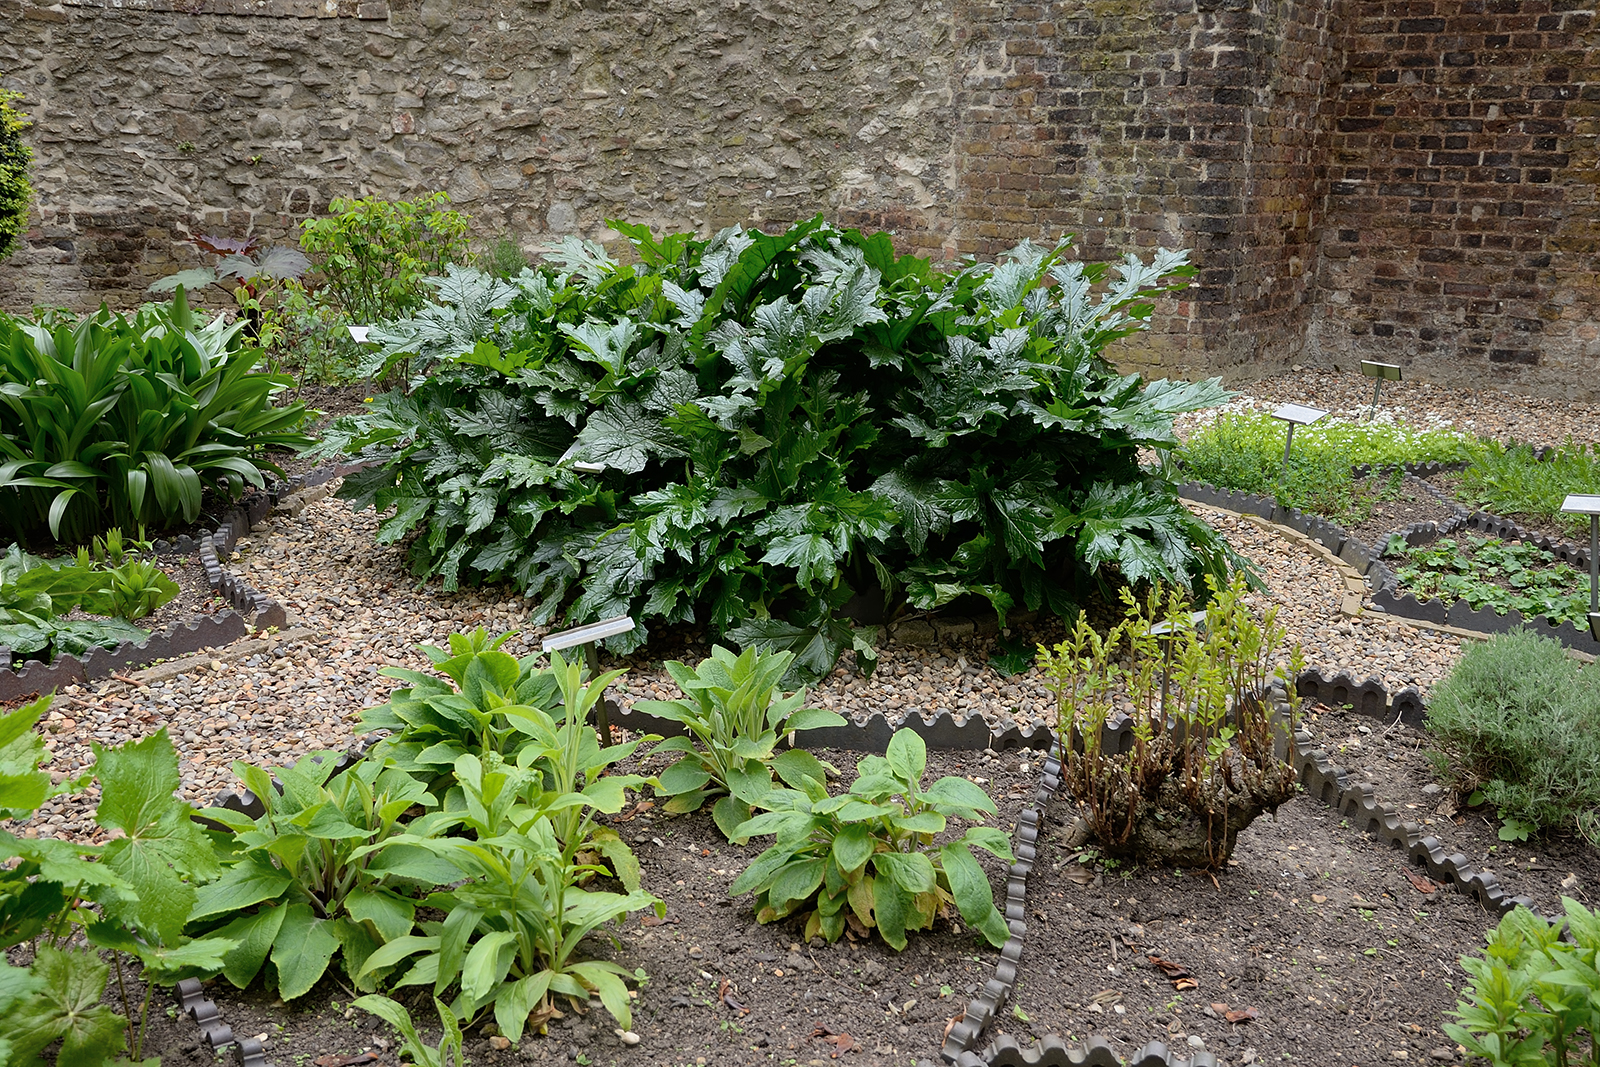 20170416_City-of-London_Monkwell-Square_Medicinal-plants-in-Barber-Surgeons-garden